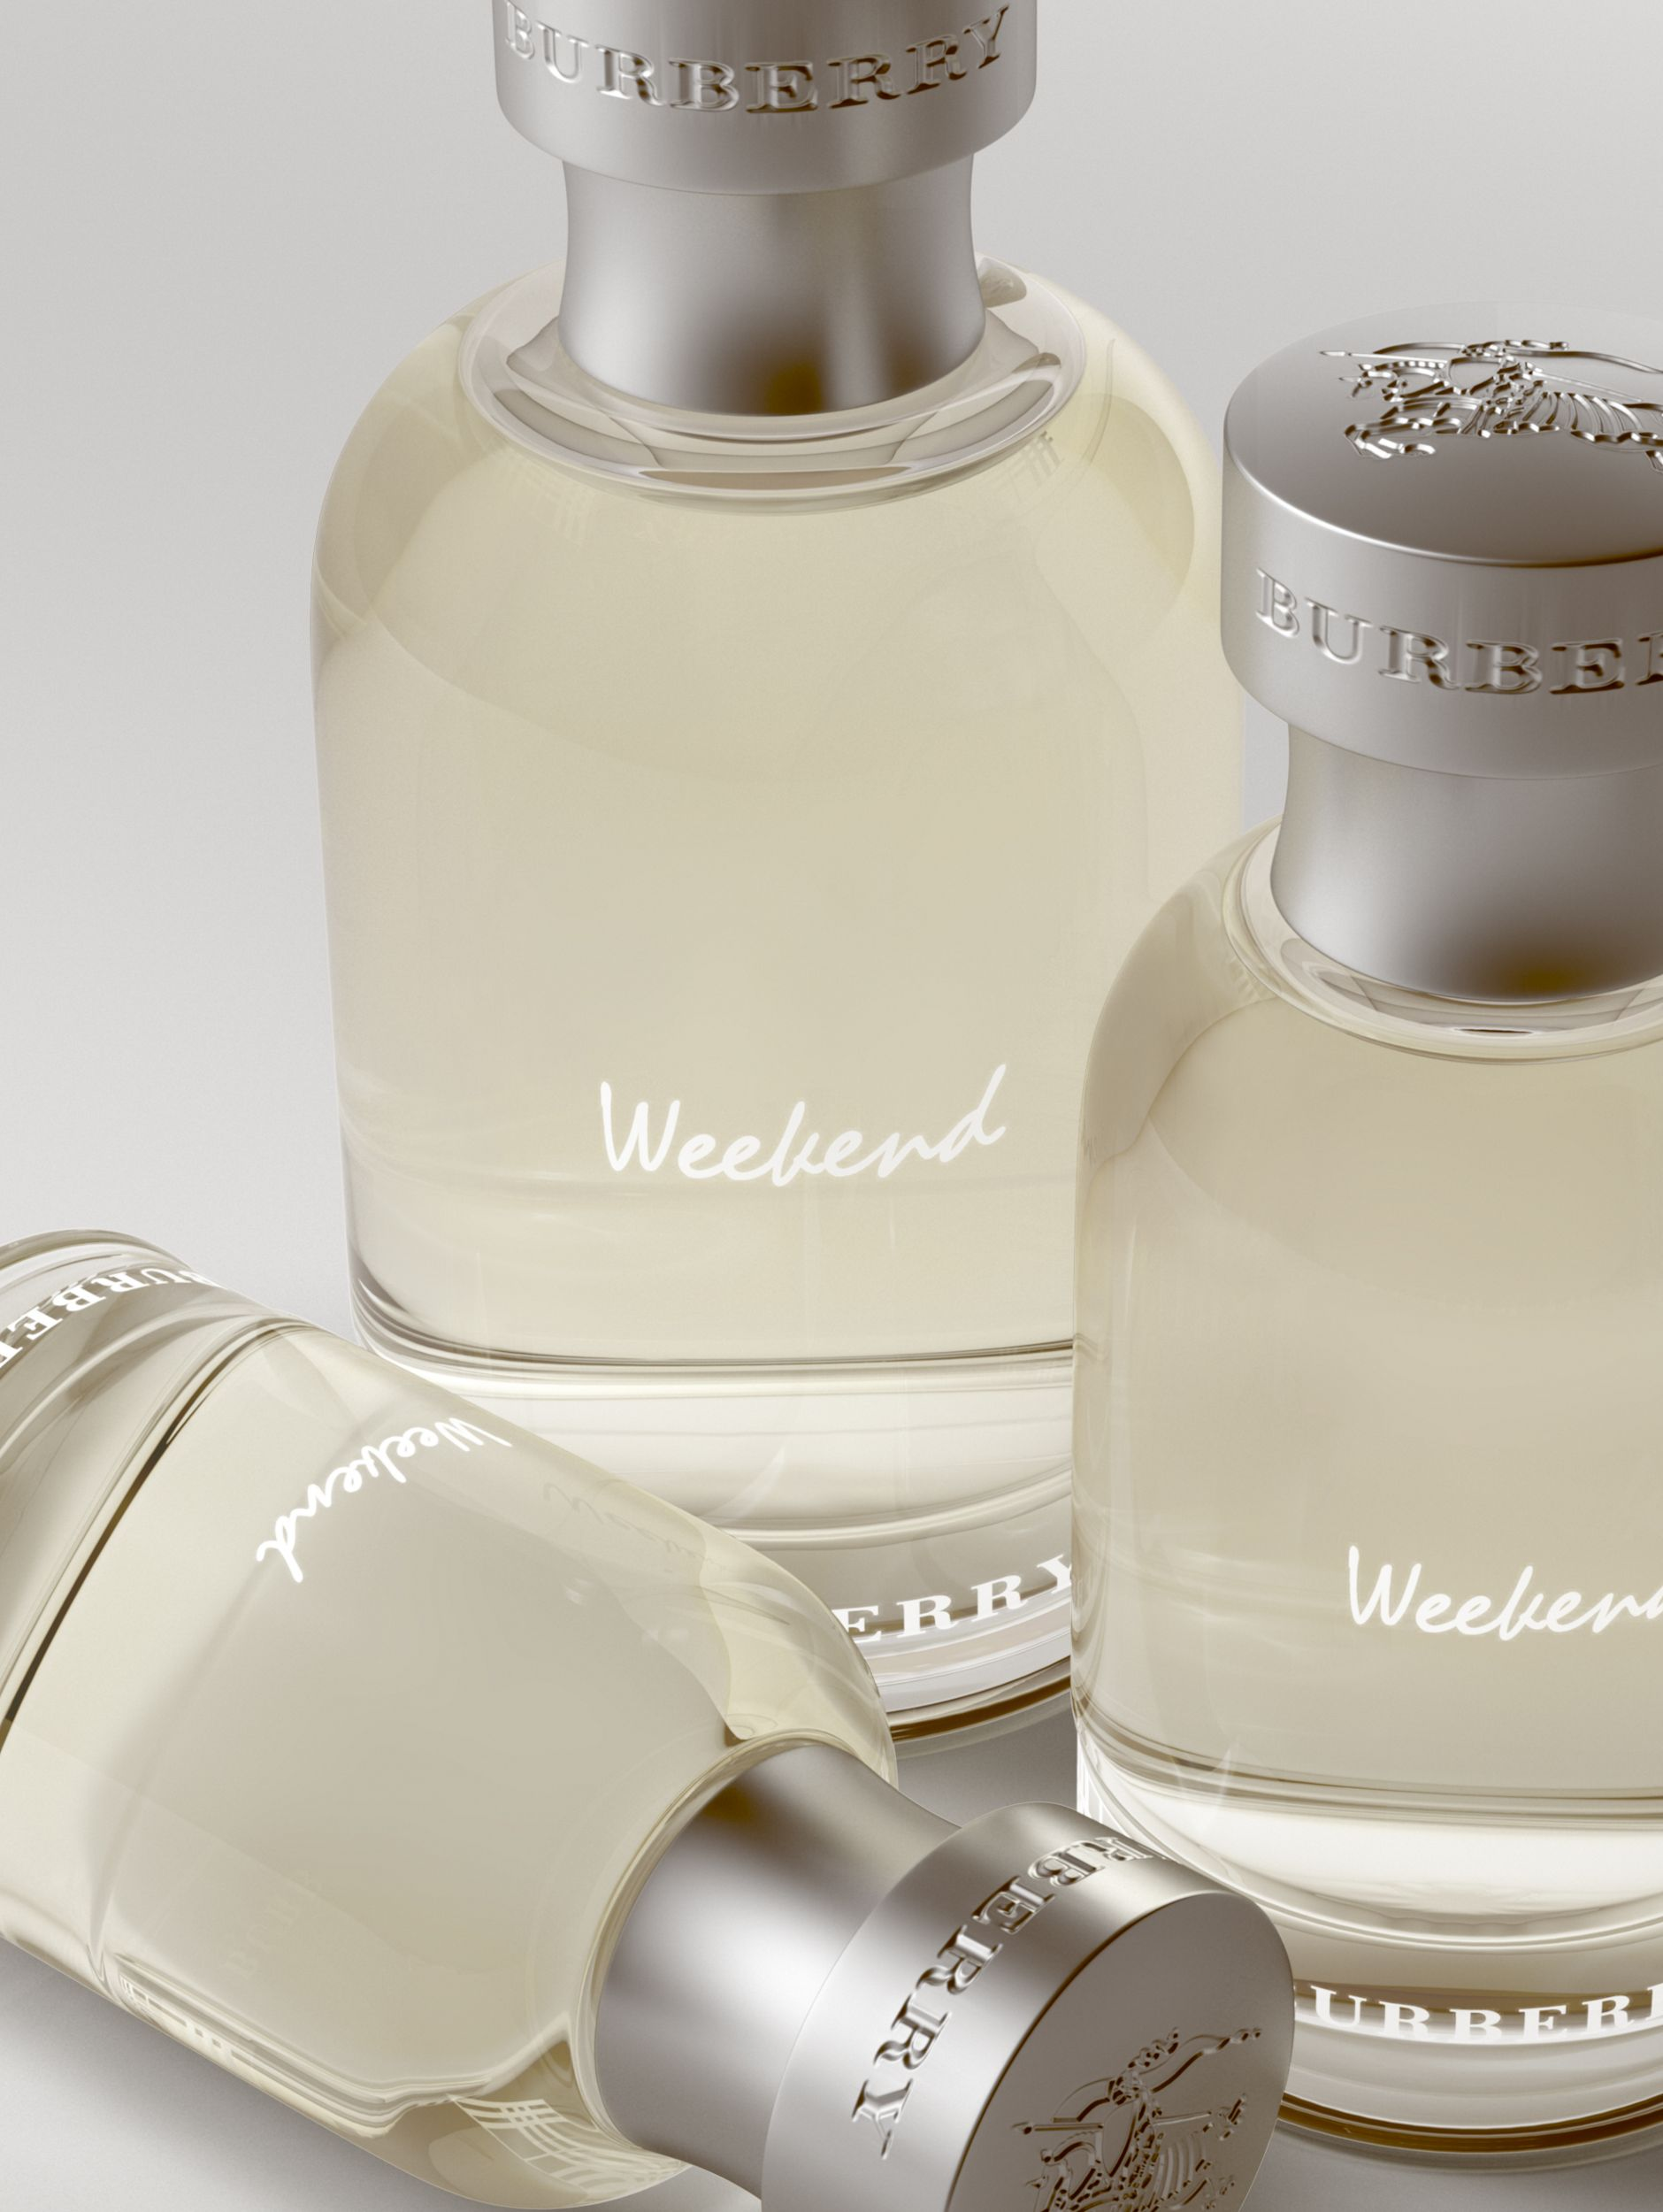 Burberry Weekend Eau de Toilette 100ml - Men | Burberry - 2